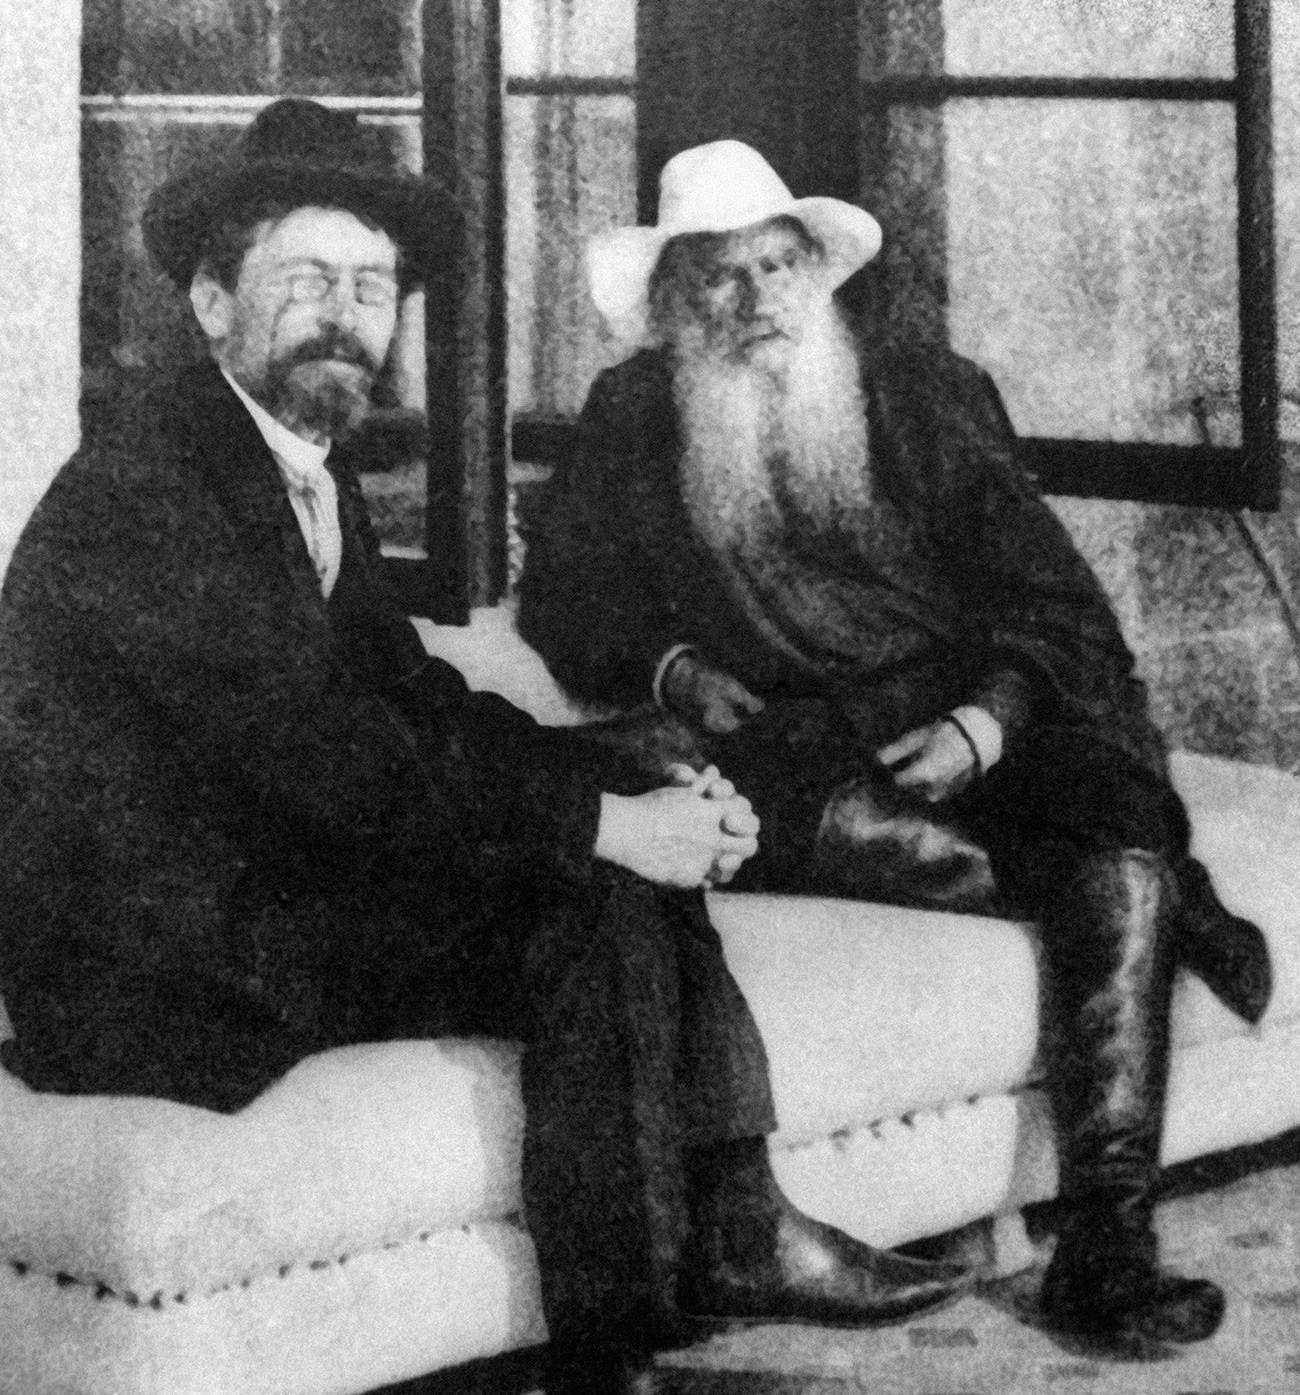 Chekhov and Tolstoy in Crimea. They actually were on good terms.